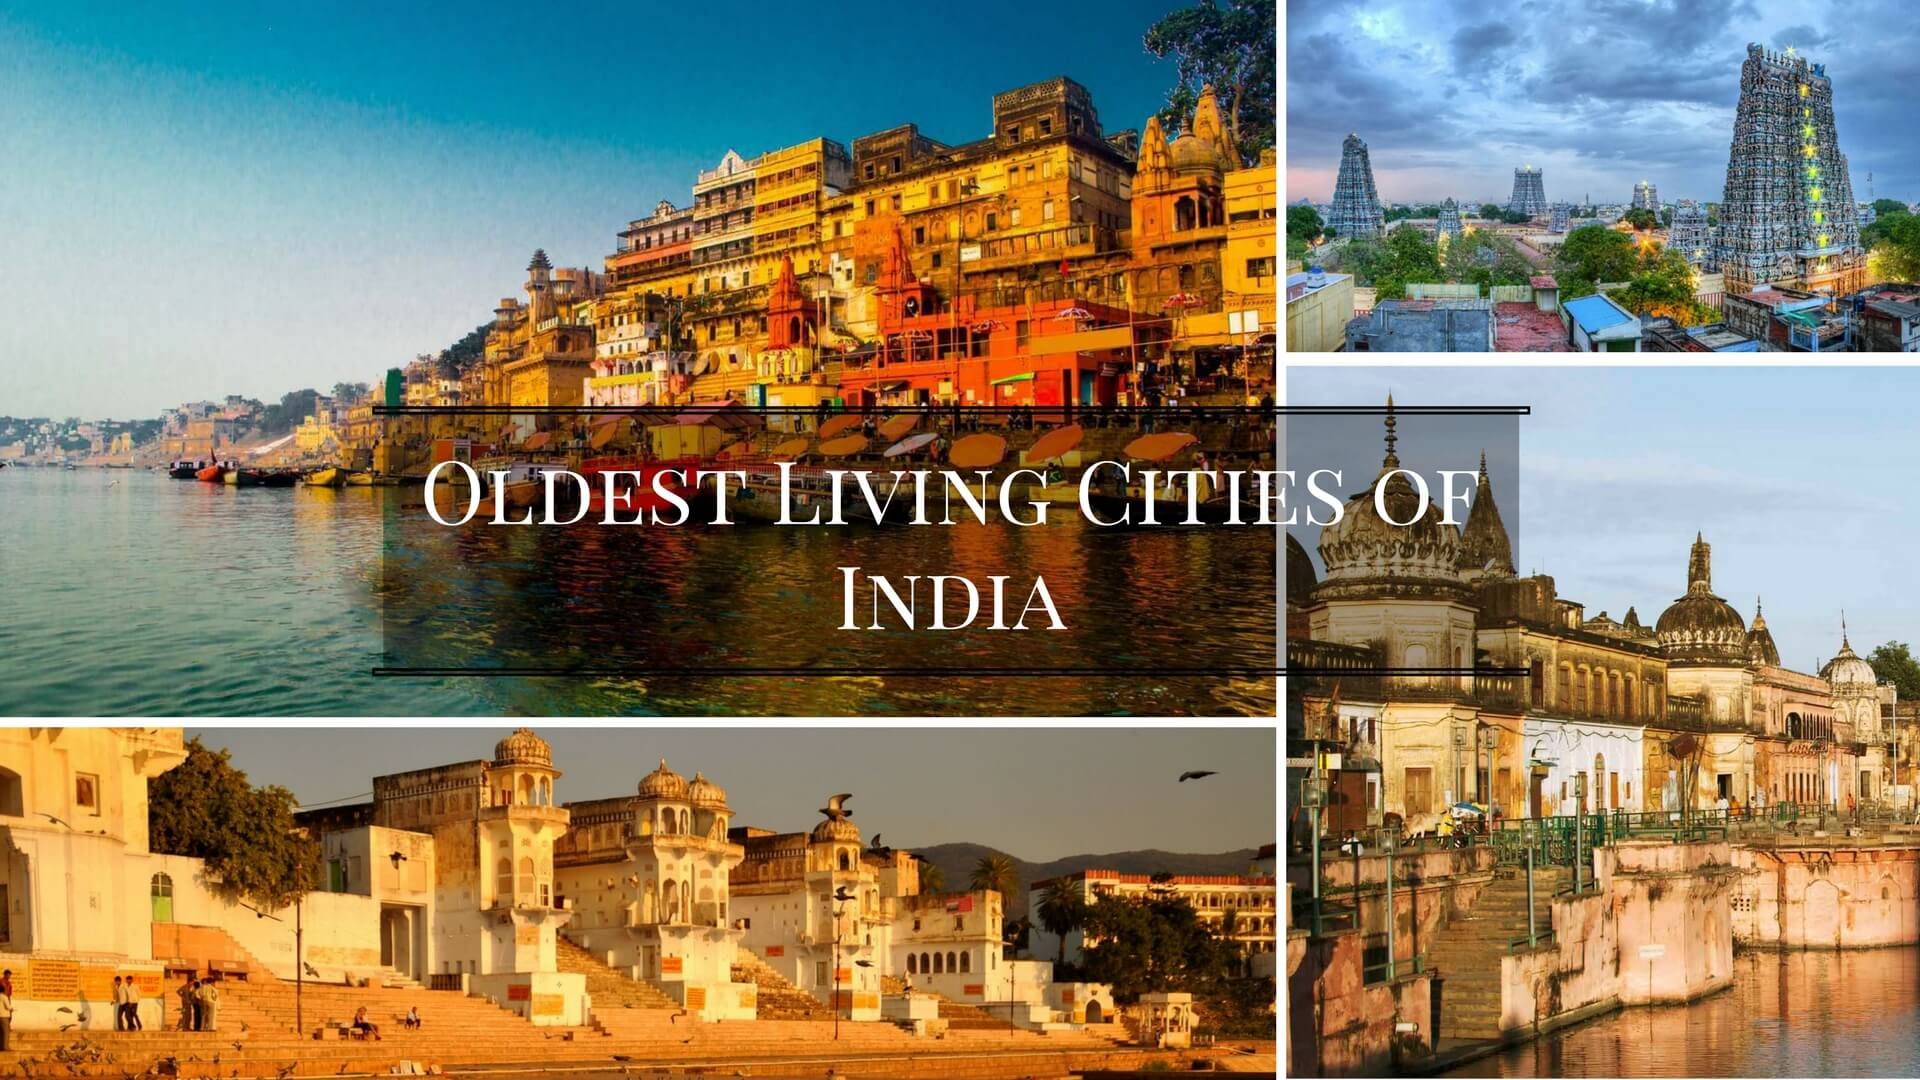 Oldest Living Cities of India